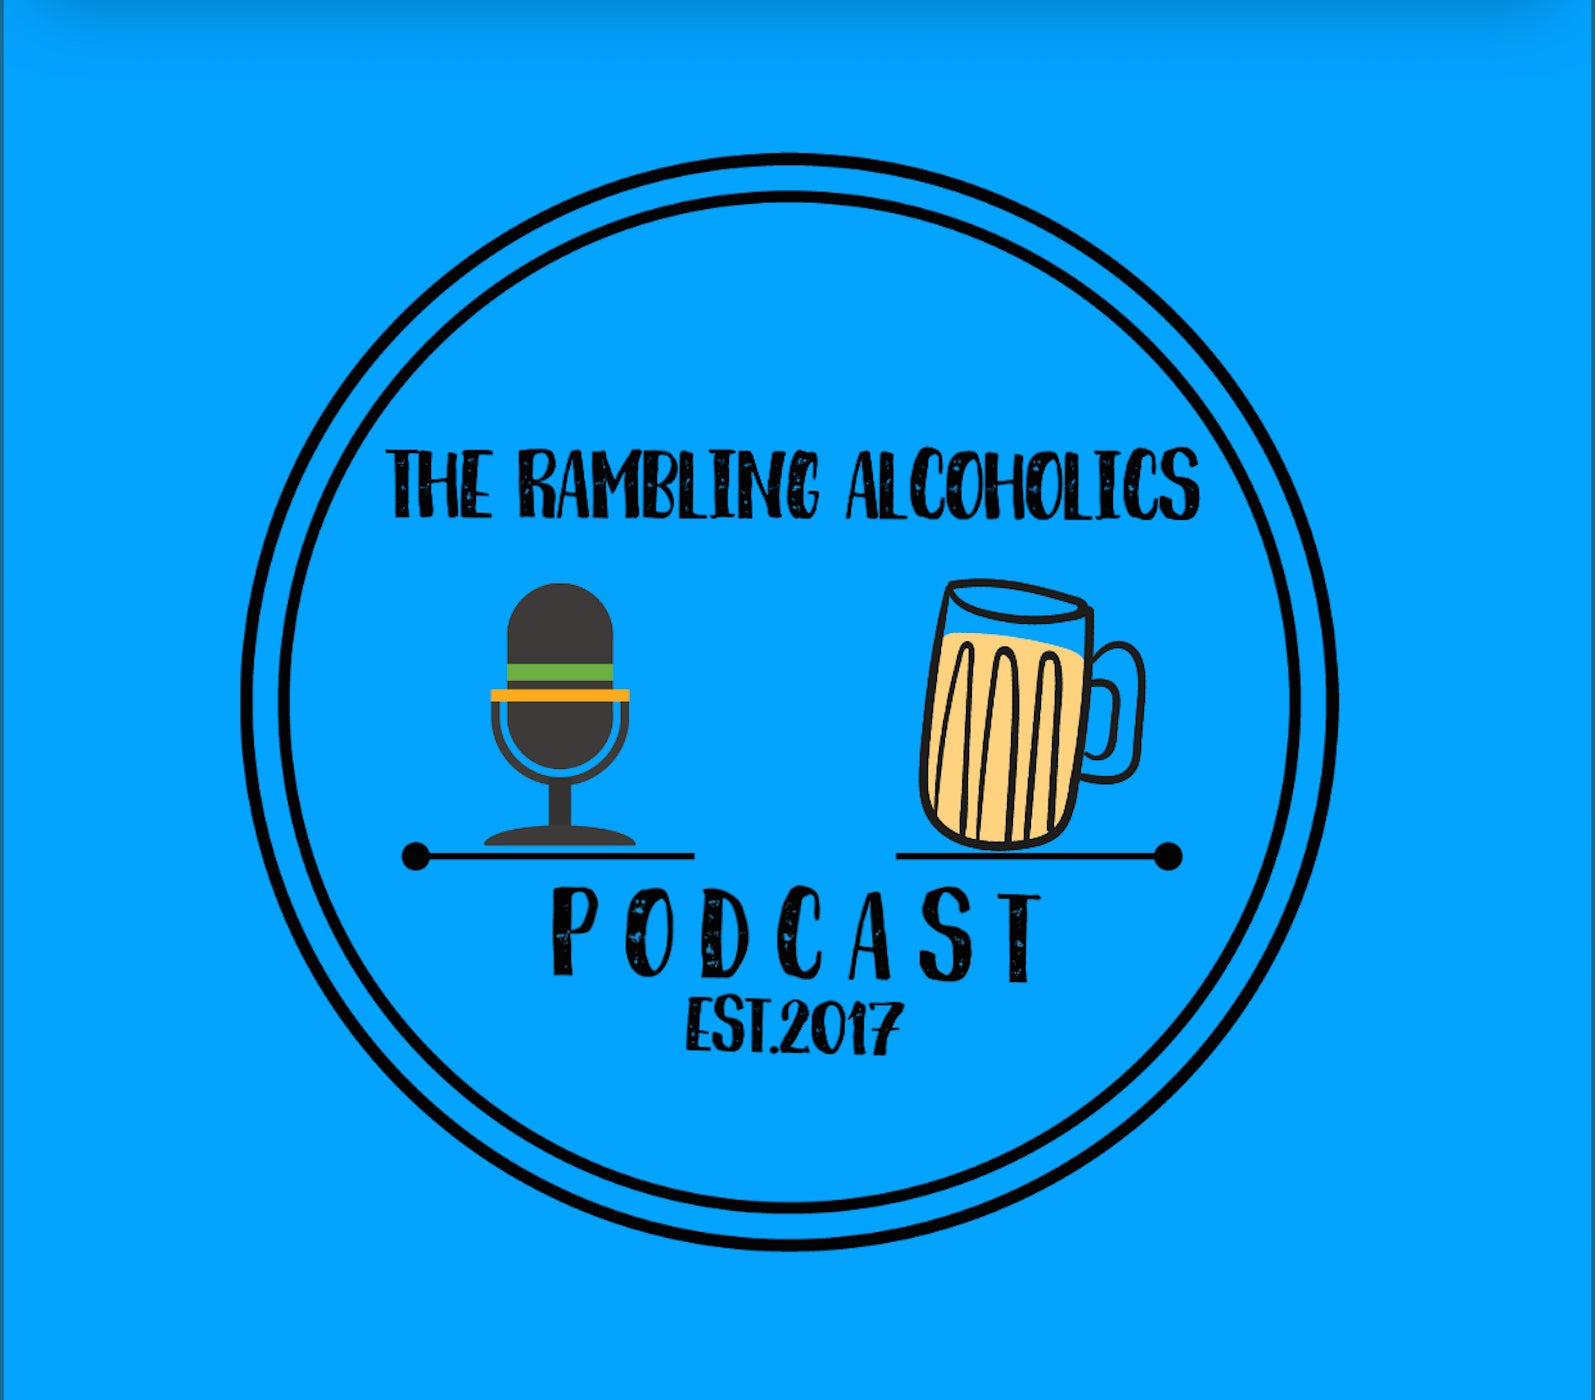 Podcast: The Rambling Alcoholics and Founder Jason Jean